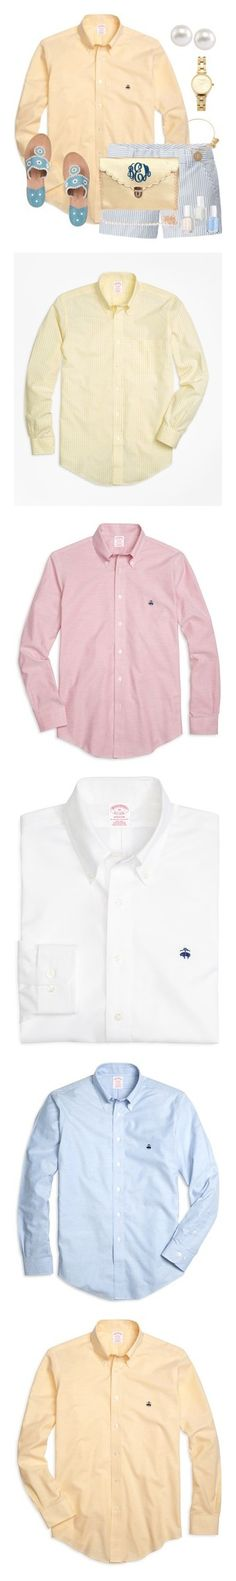 """""""Button ups"""" by beccaaclose ❤ liked on Polyvore featuring Brooks Brothers, Uniqlo, Jack Rogers, Carolee, Olivia Burton, Alex and Ani, Essie, men's fashion, men's clothing and men's shirts"""